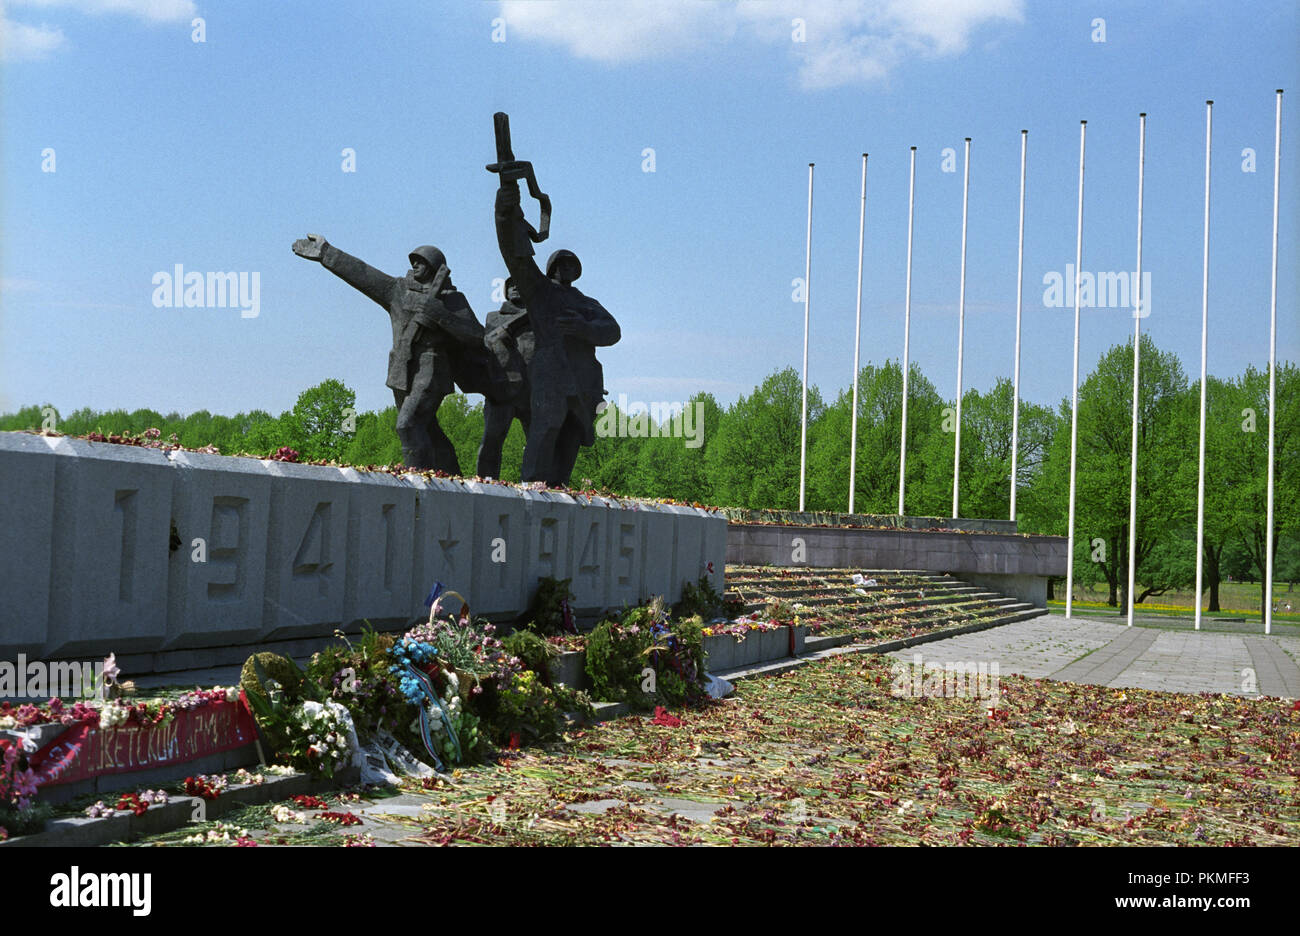 Soviet War Memorial in Riga Latvia May 2007   erected in 1985 to commemorate the Soviet Army's victory over the Nazi Germany in World War 2 - Stock Image